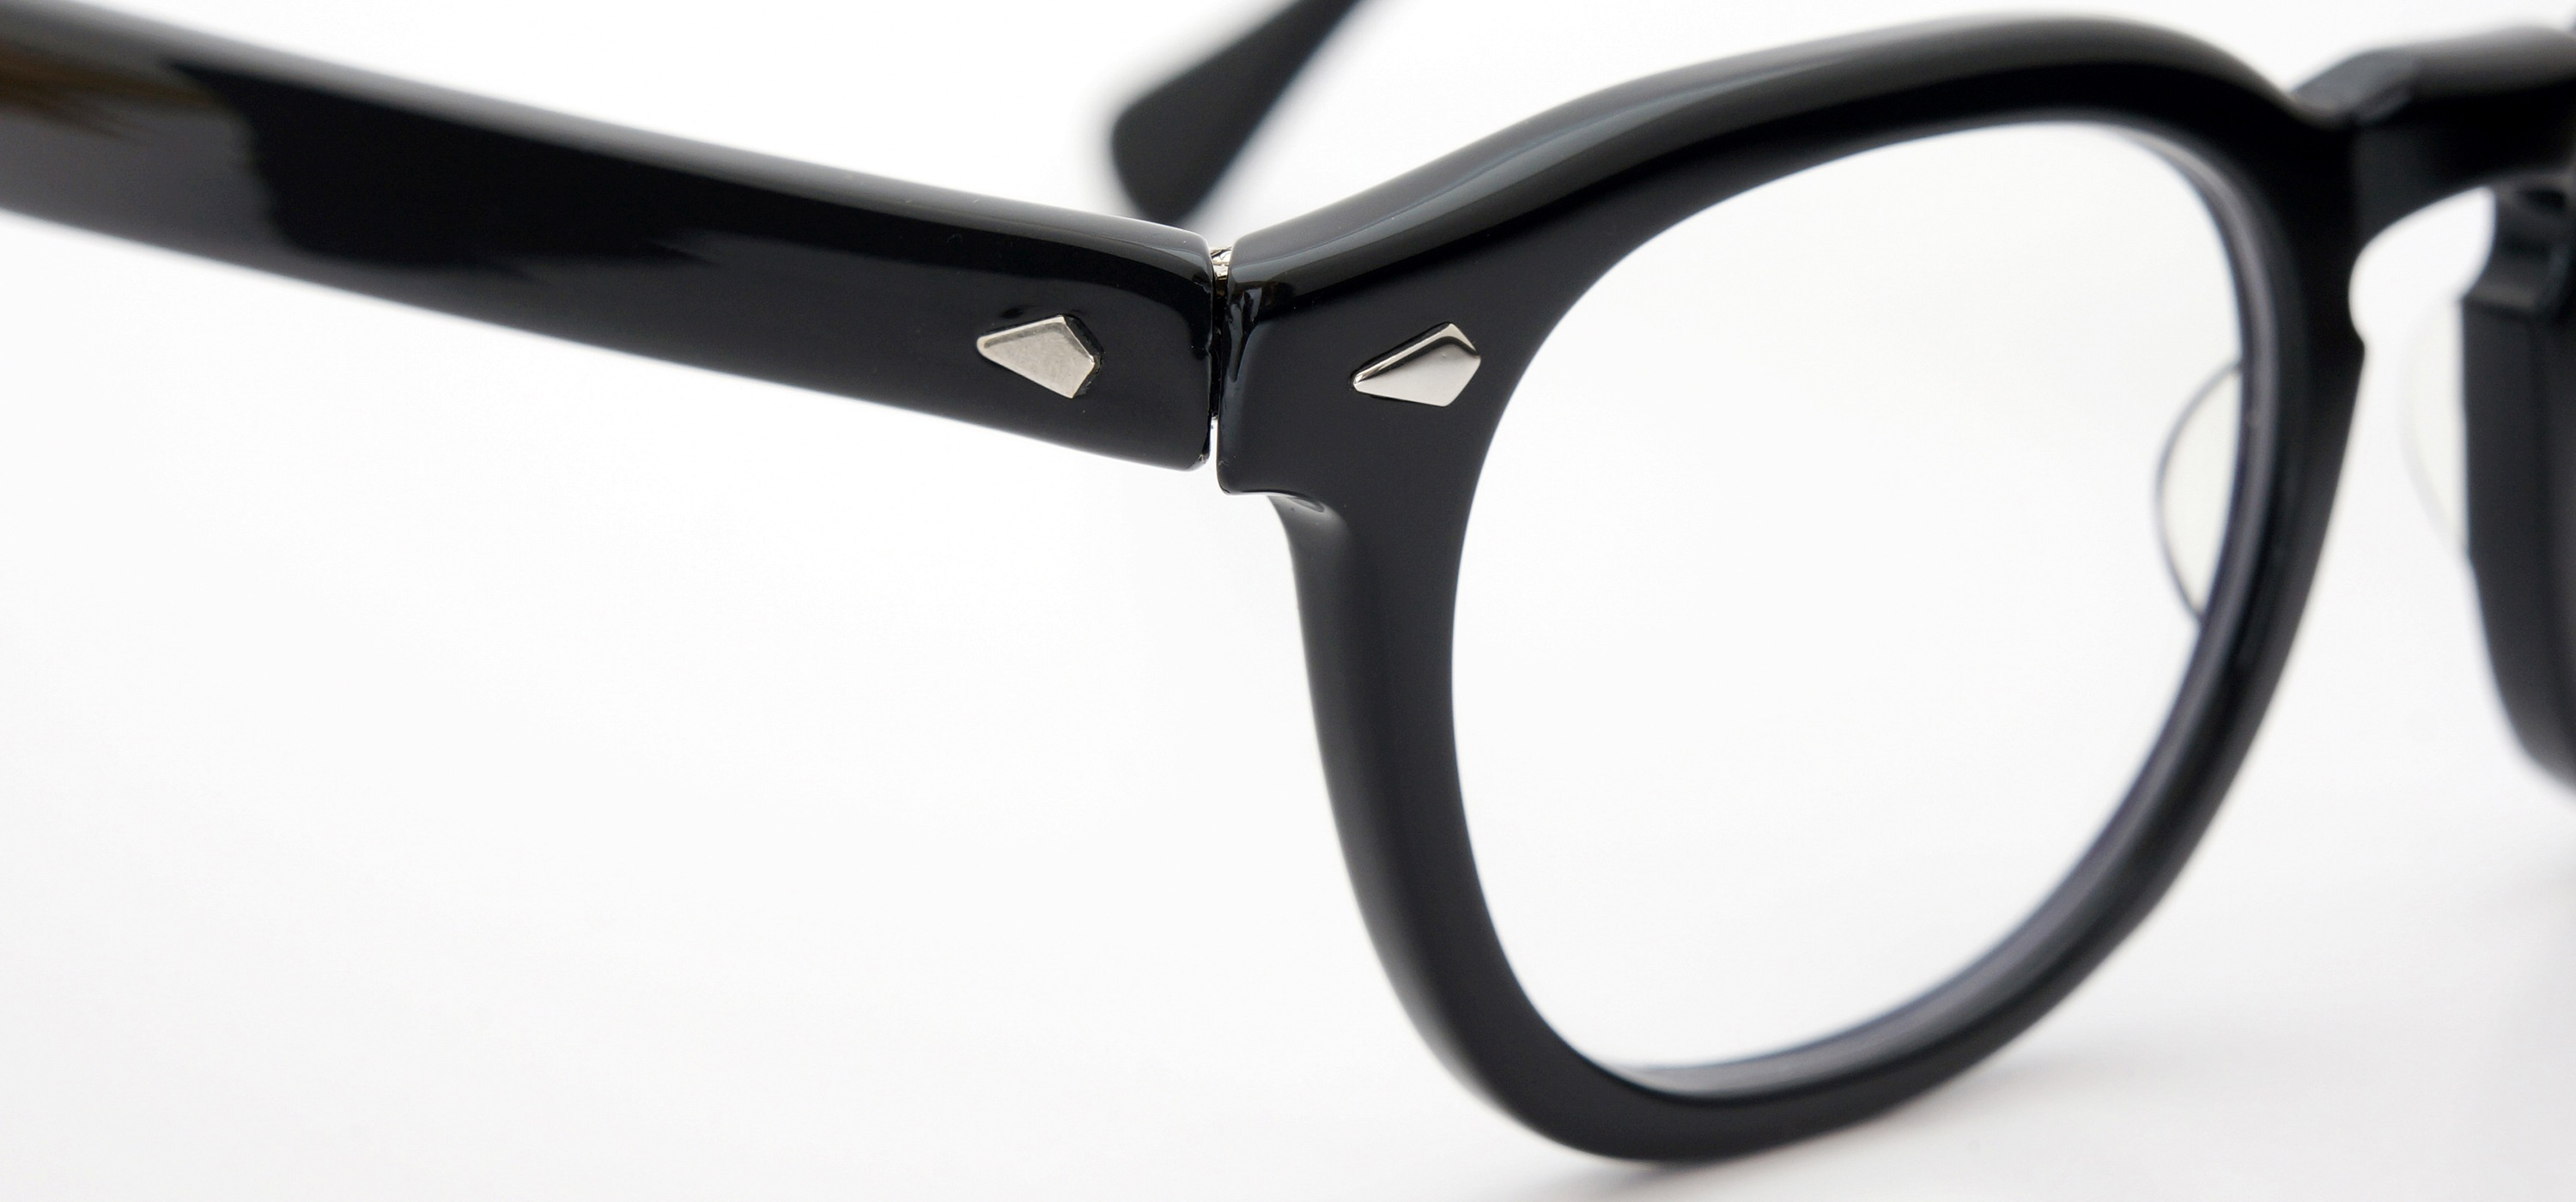 The Spectacle メガネ 1950s-70s TART OPTICAL ARNEL(FRAME USA) BLACK 48-22 イメージ6